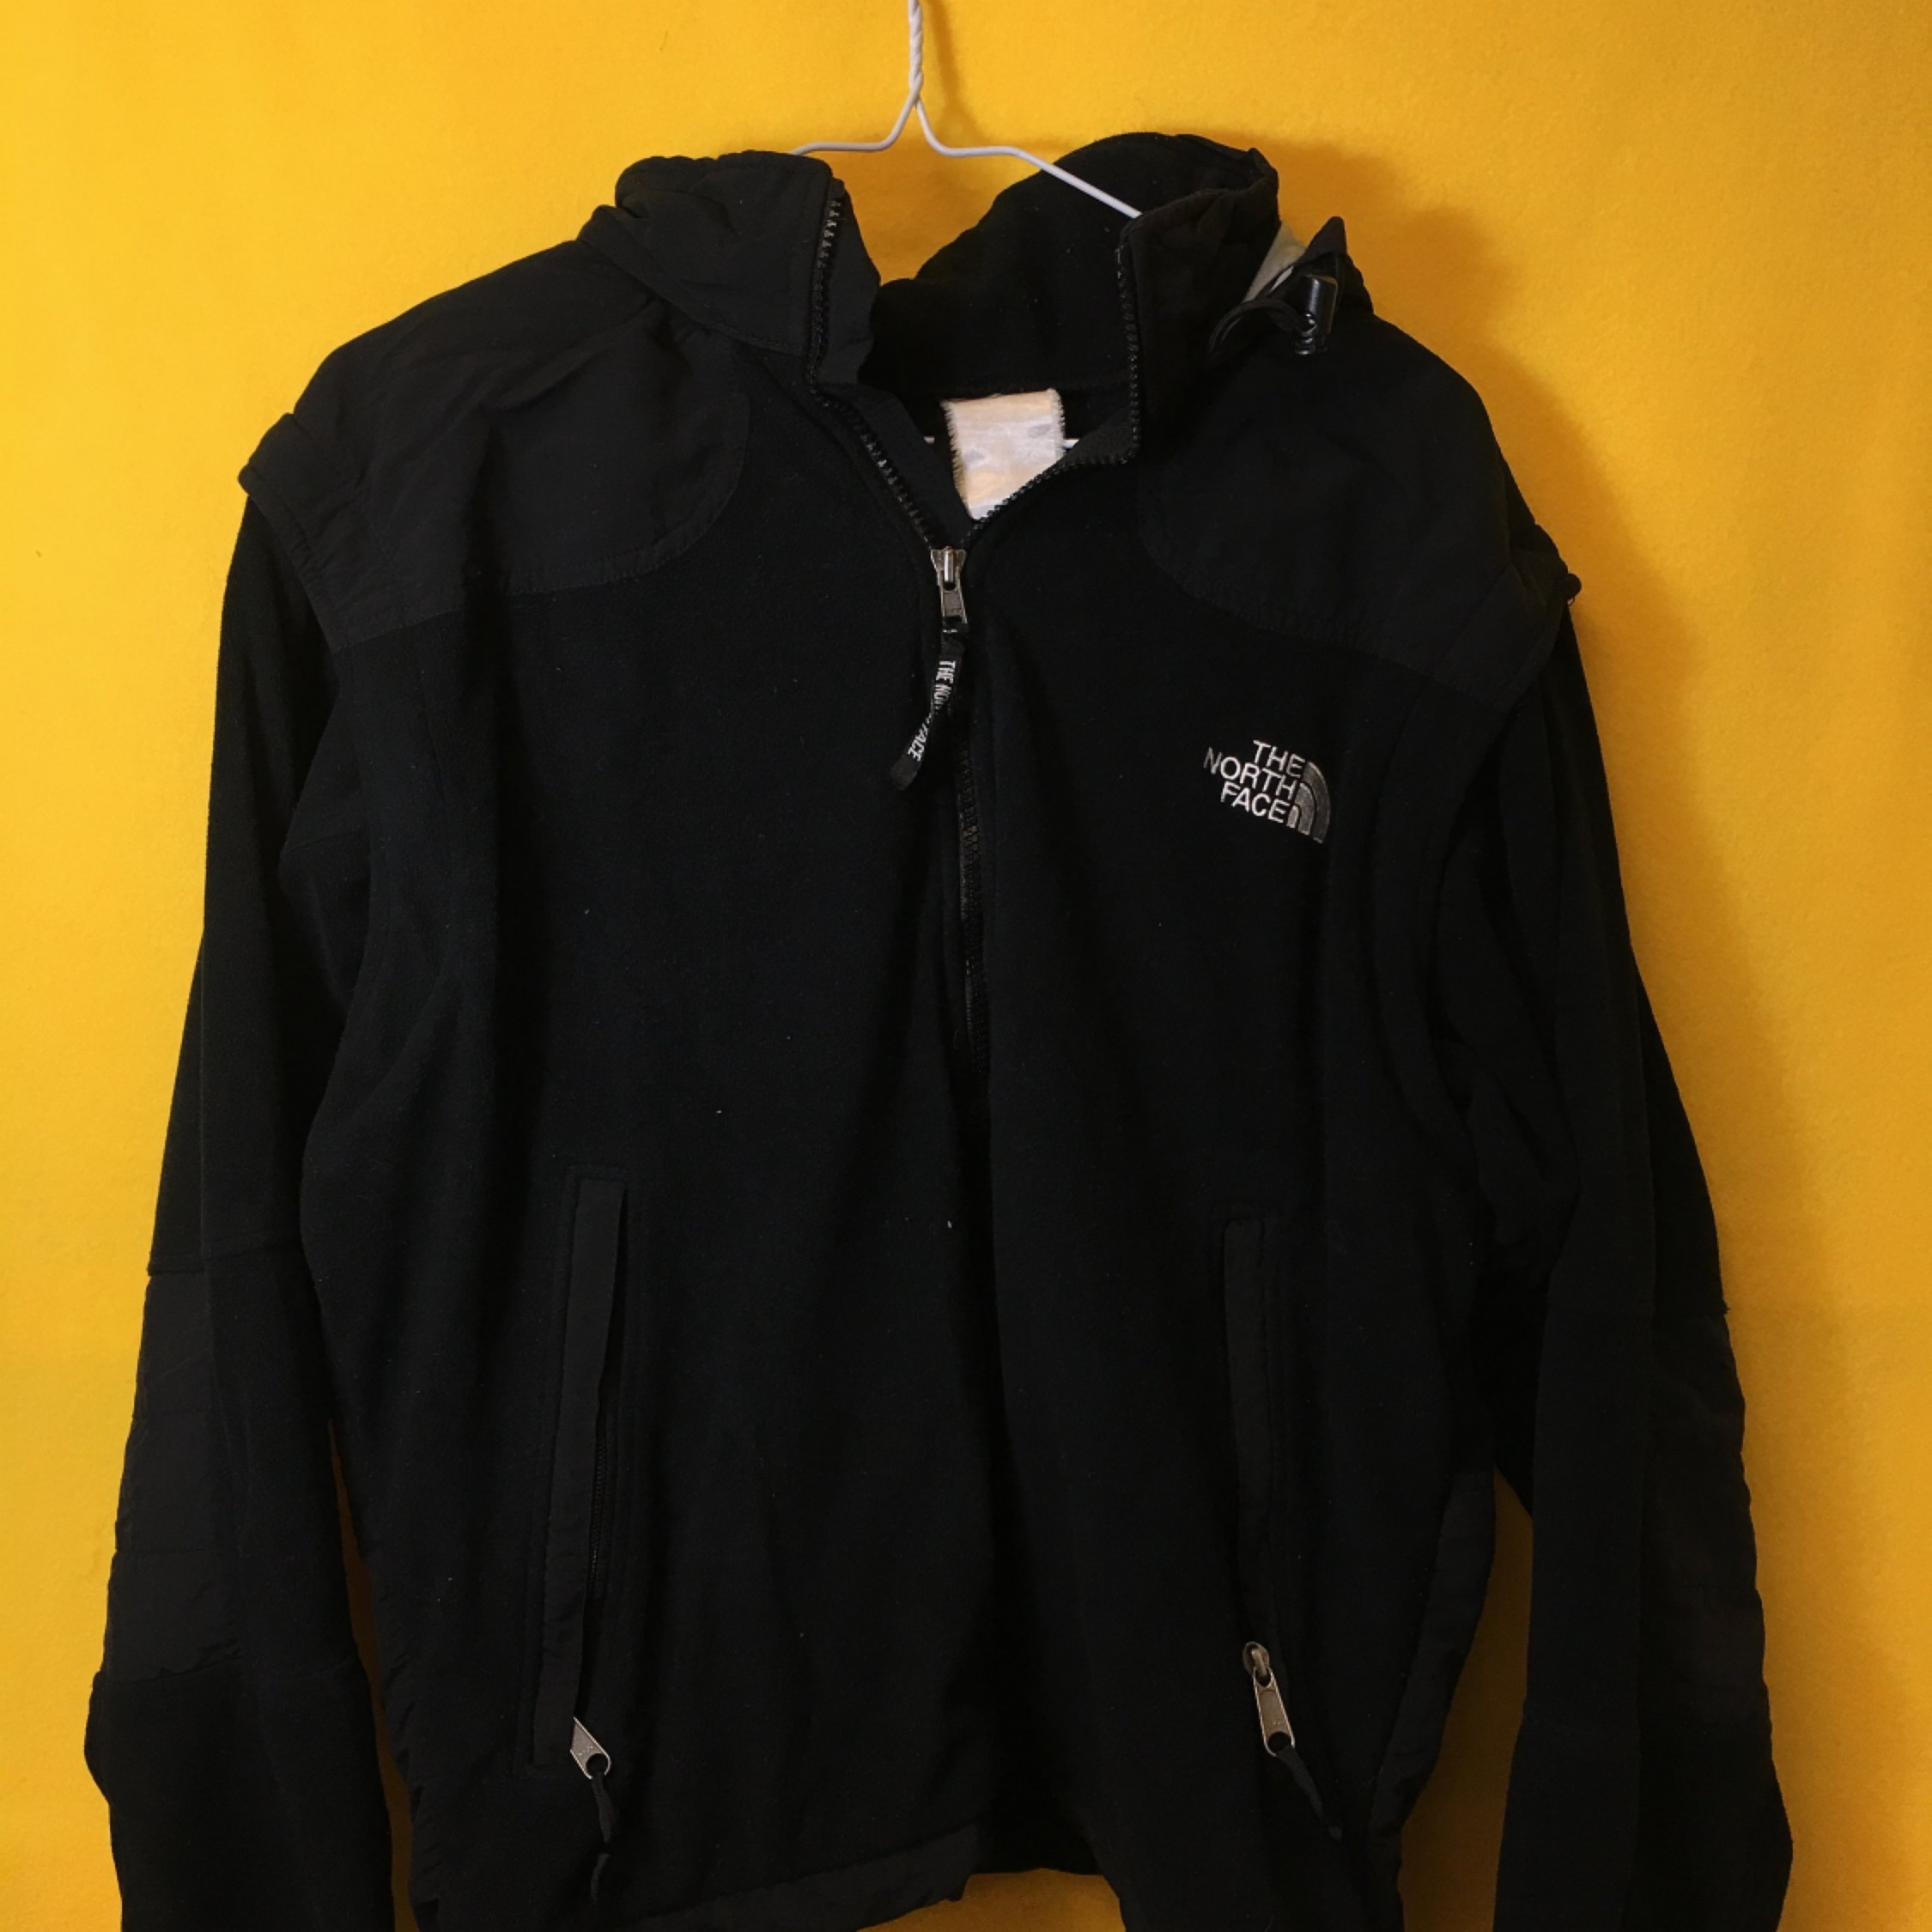 best website 5b9e6 1eafb Vintage The North Face Fleece Jacket